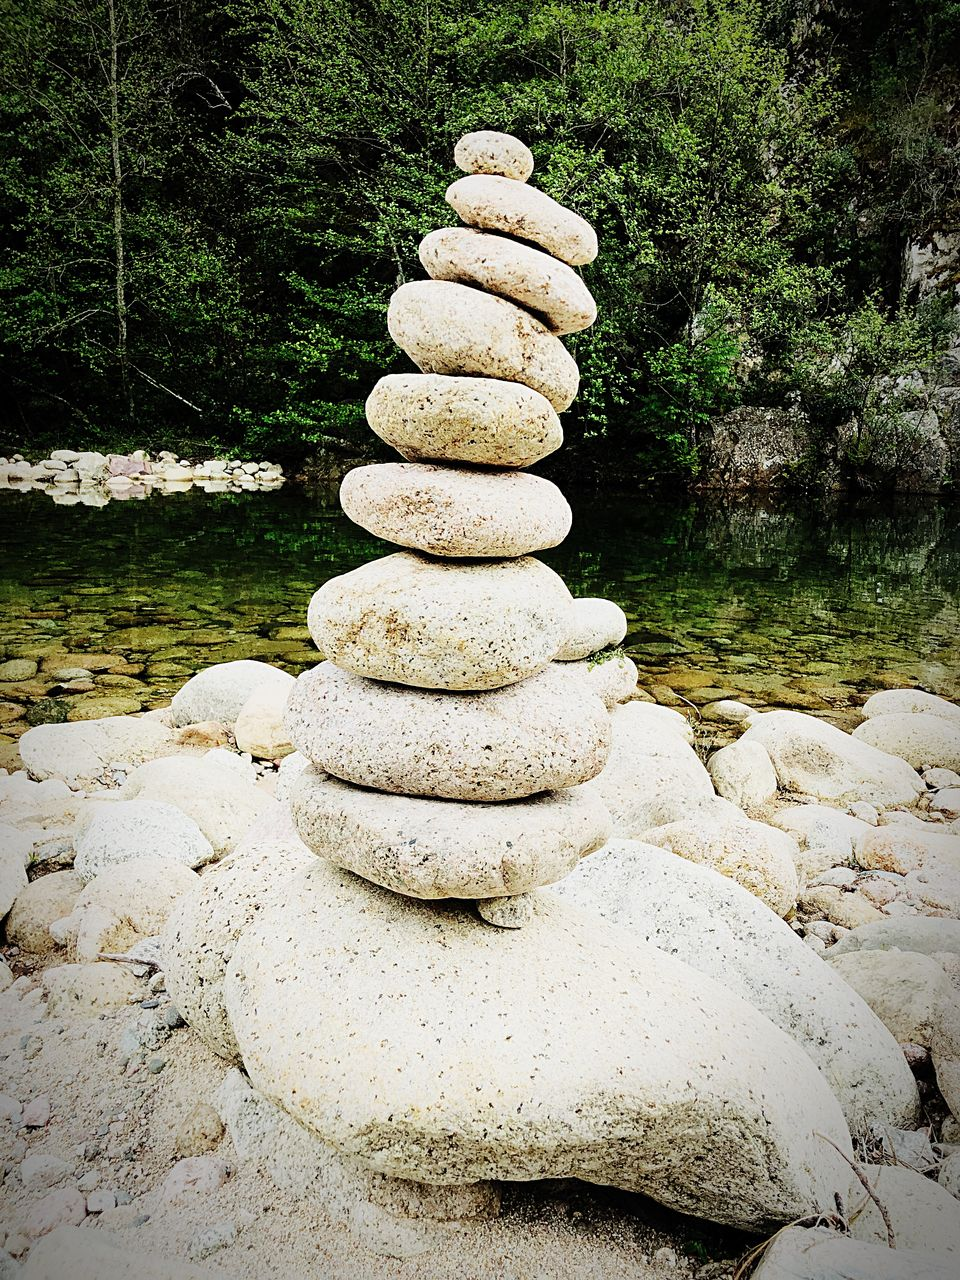 stack, balance, solid, rock, stone - object, zen-like, rock - object, stone, pebble, tranquility, nature, water, no people, beauty in nature, day, land, plant, tranquil scene, outdoors